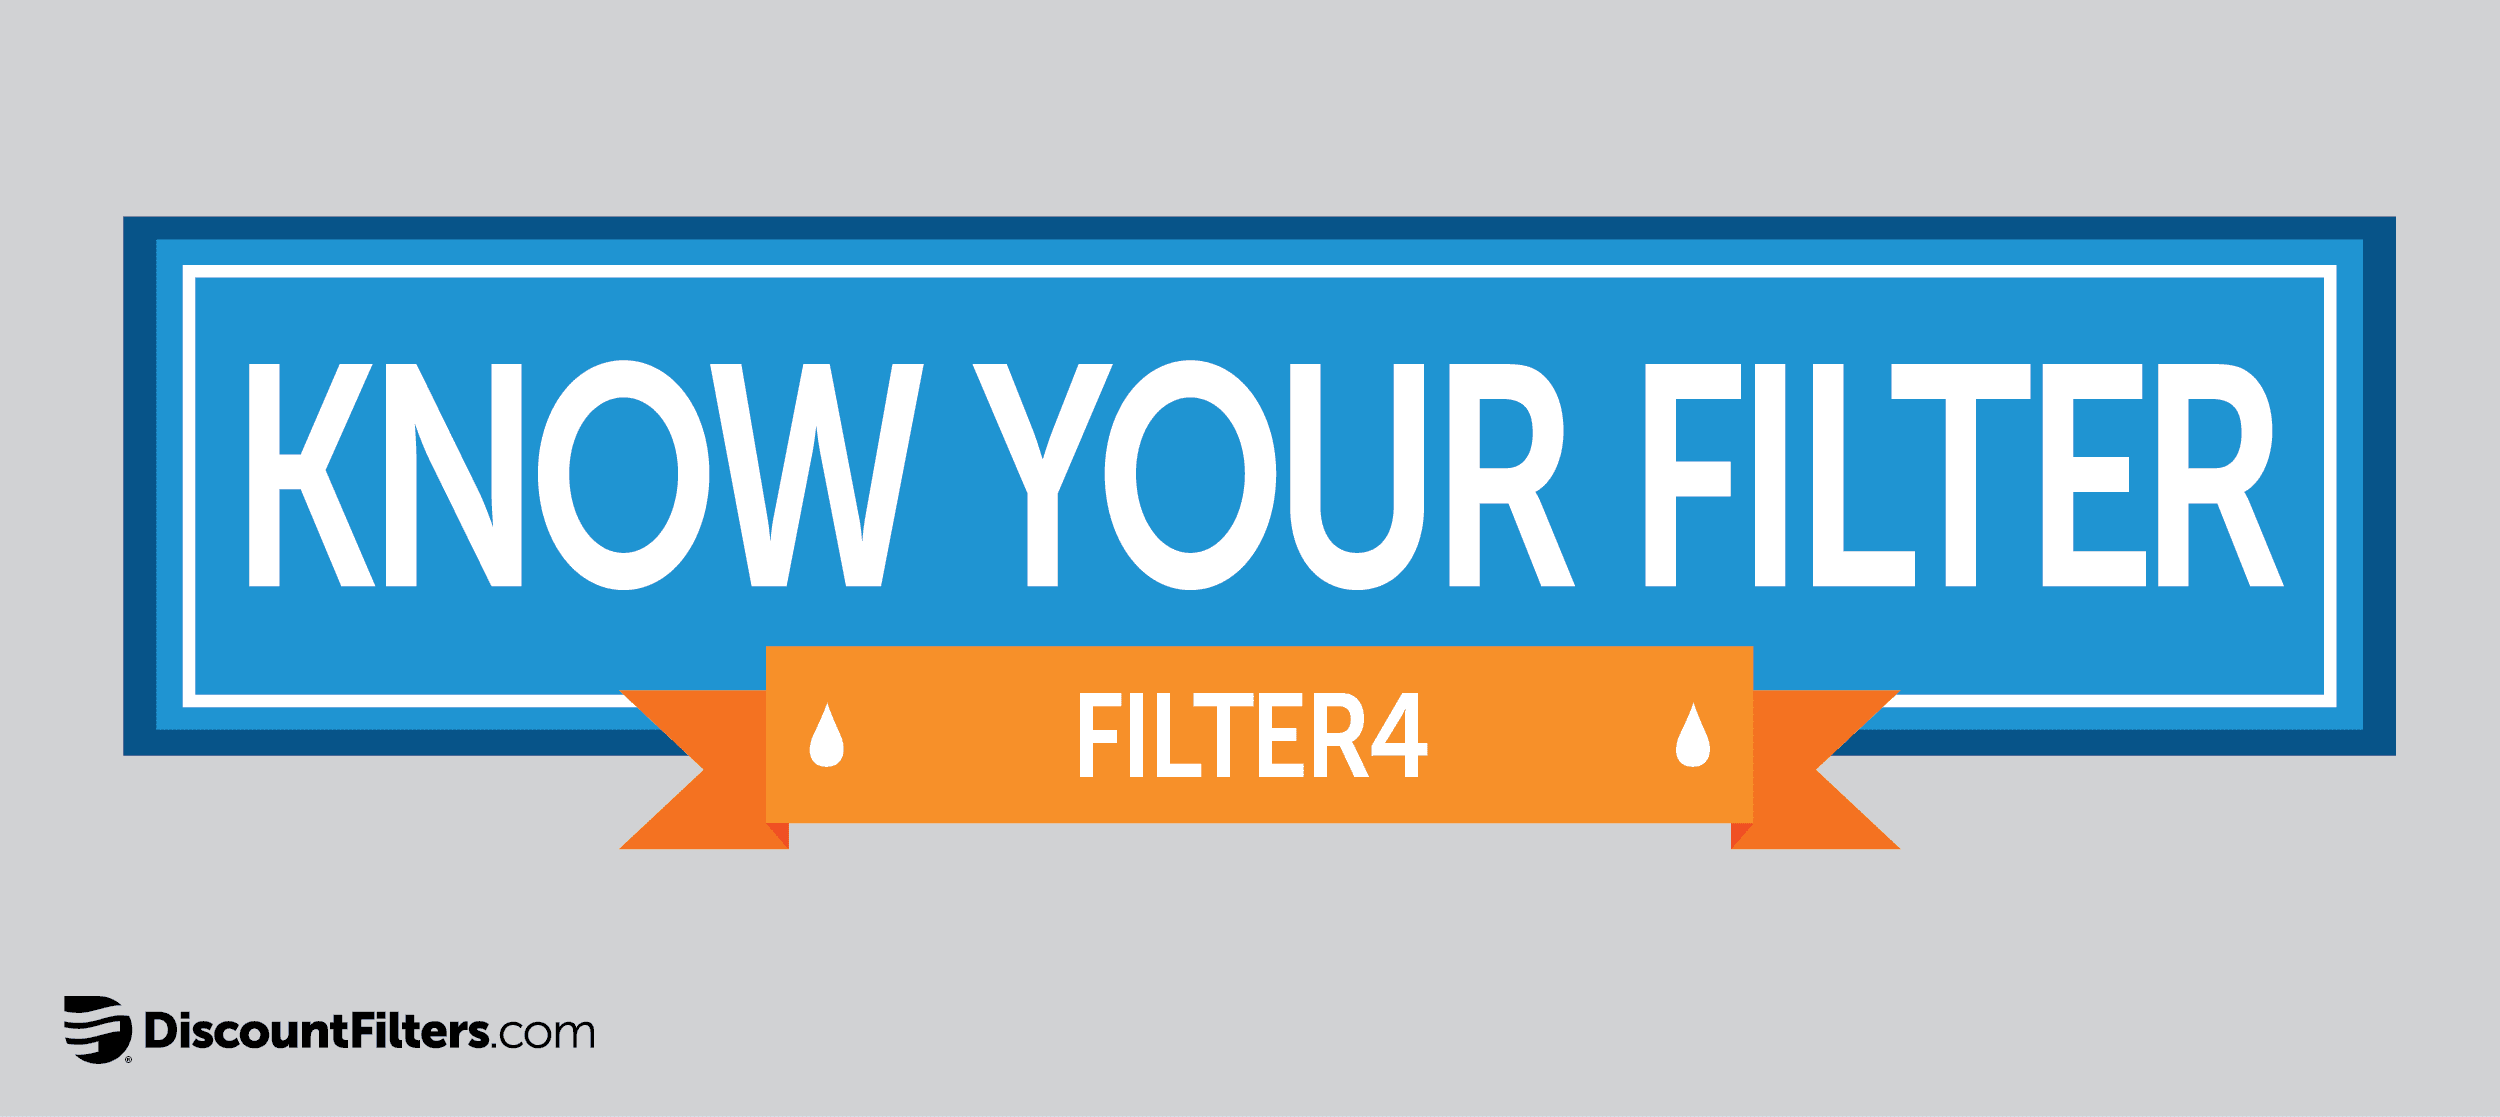 UKF8001 replacement filter4 know your filter